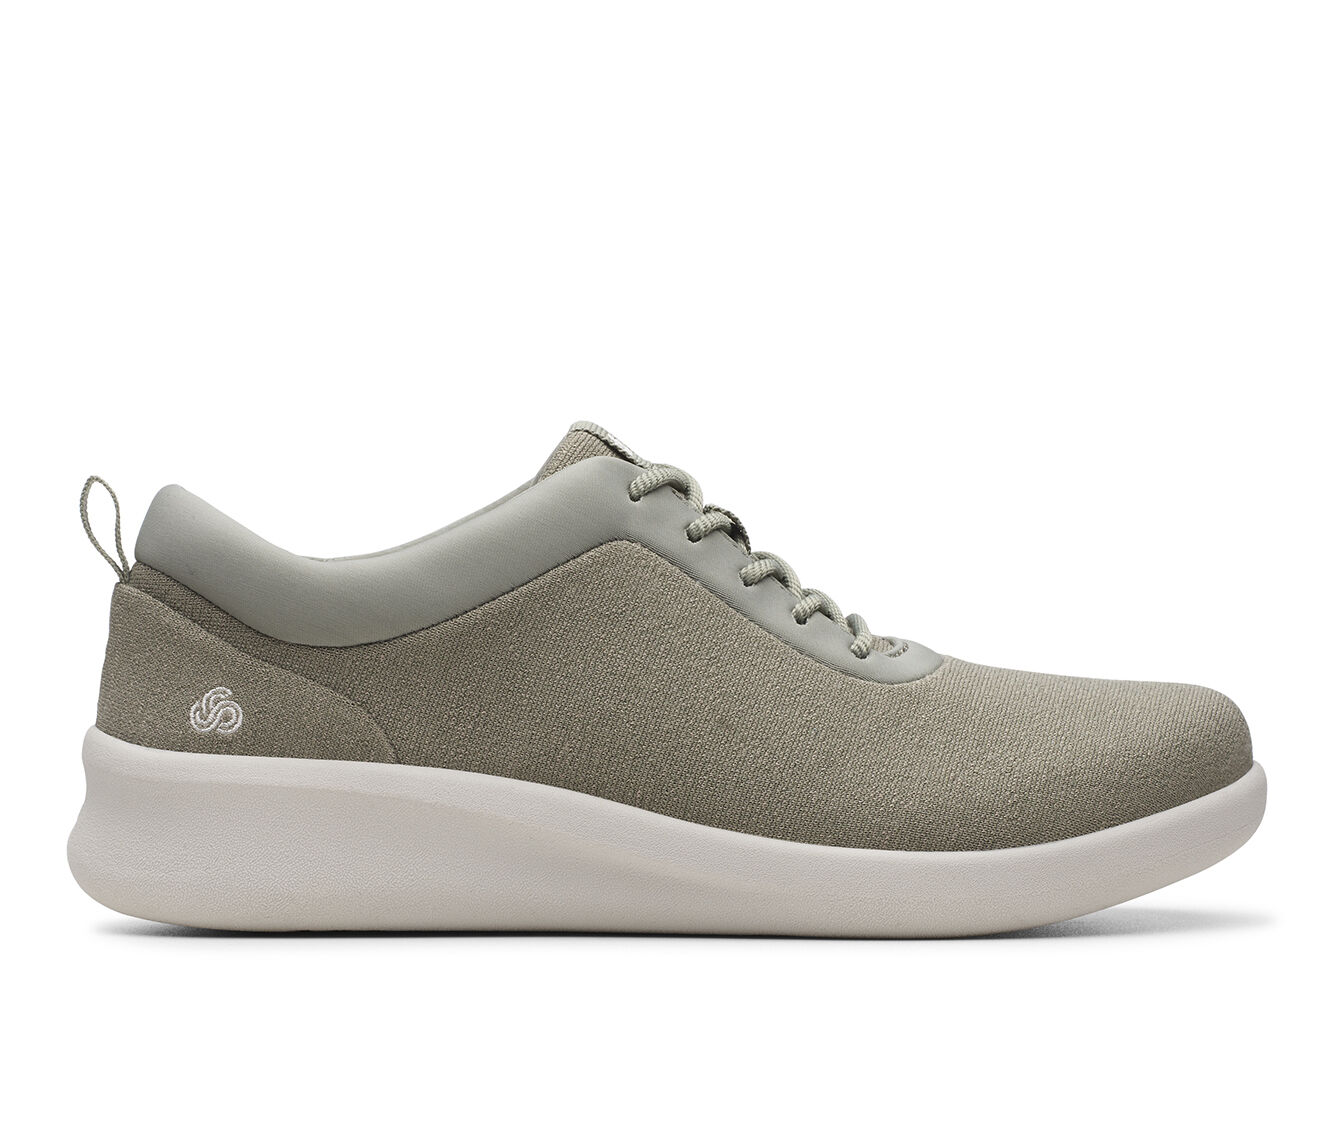 Women's Clarks Sillian 2.0 Pace Dusty Olive